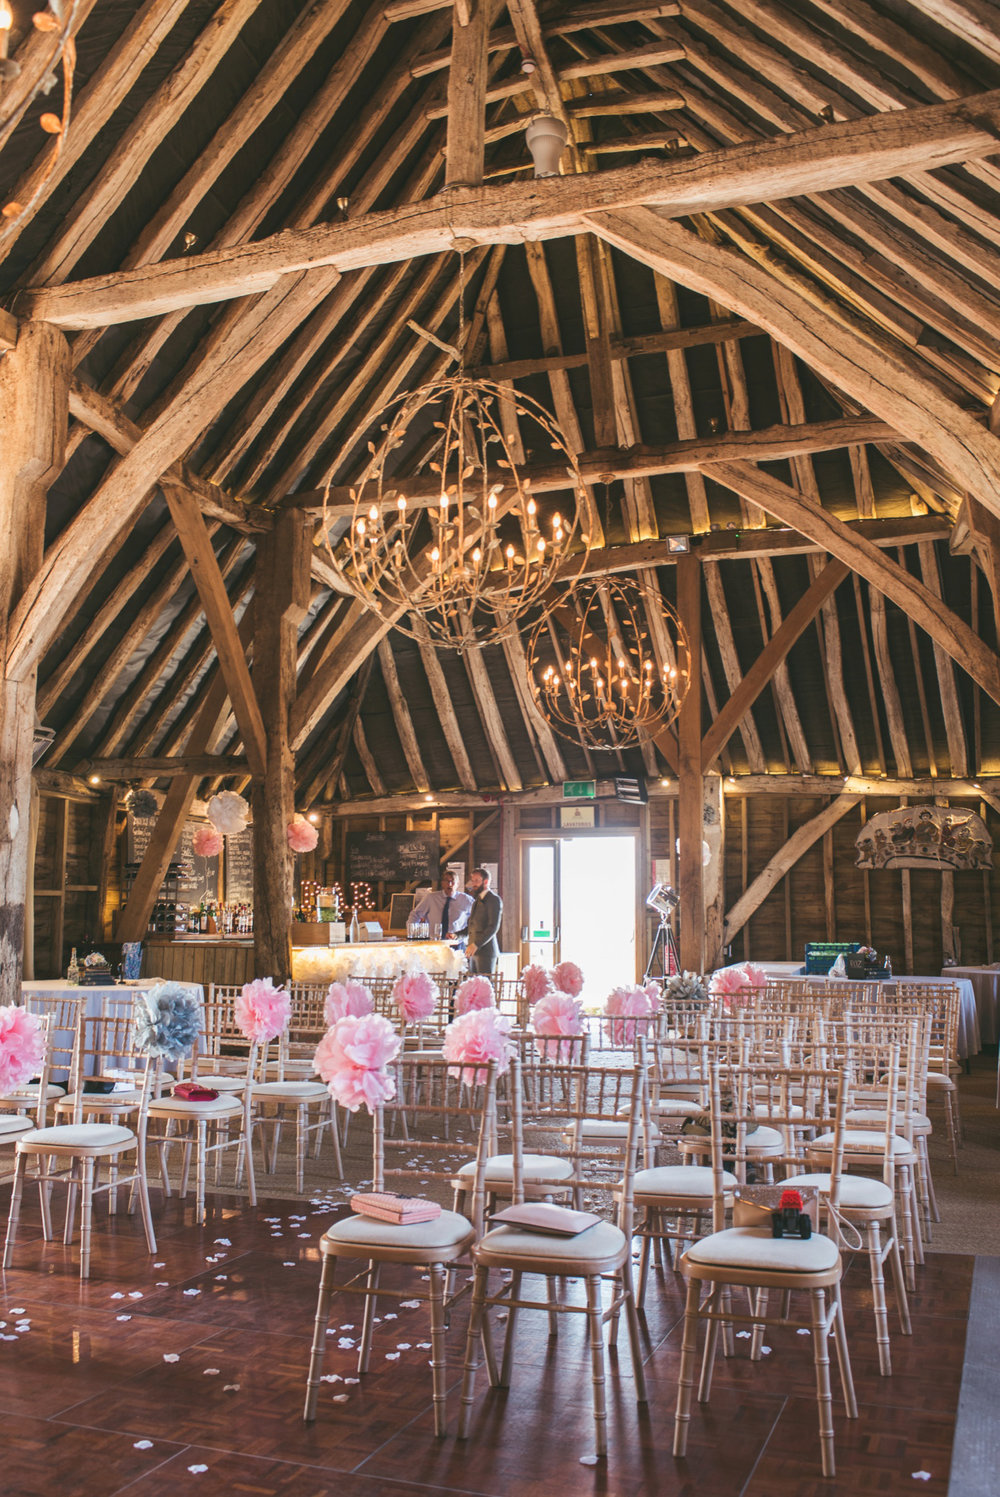 odos-barn-ashford-kent-wedding-photographer-odo's-barn-bilisington-by-lindsleyweddings_0076.jpg